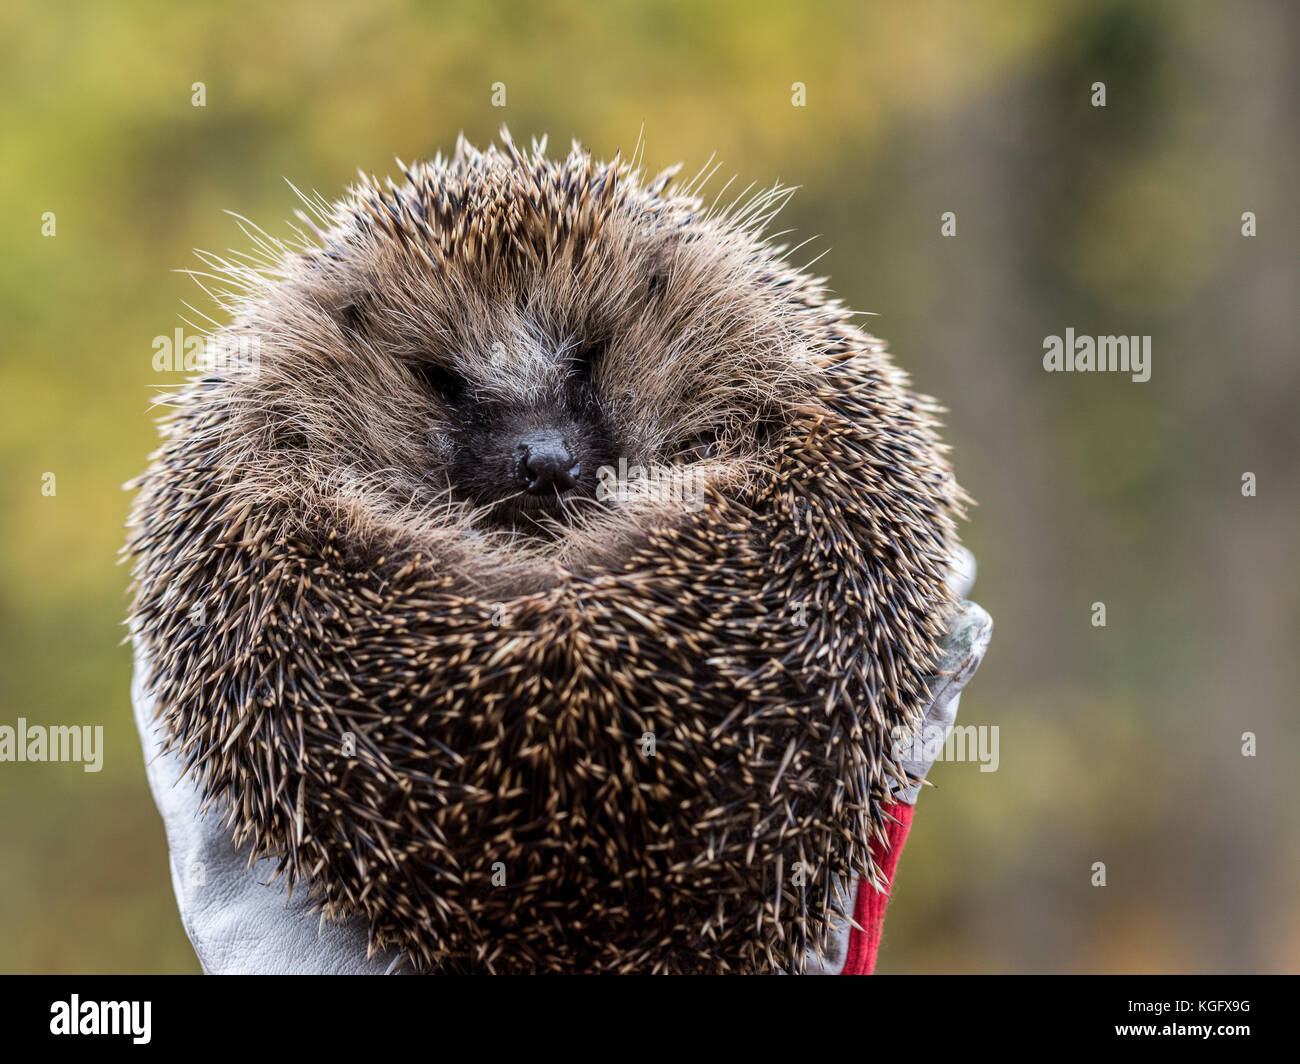 Wild Eurpean Hedgehog, Erinaceus europaeus, curled up in a hand with gloves on - Stock Image